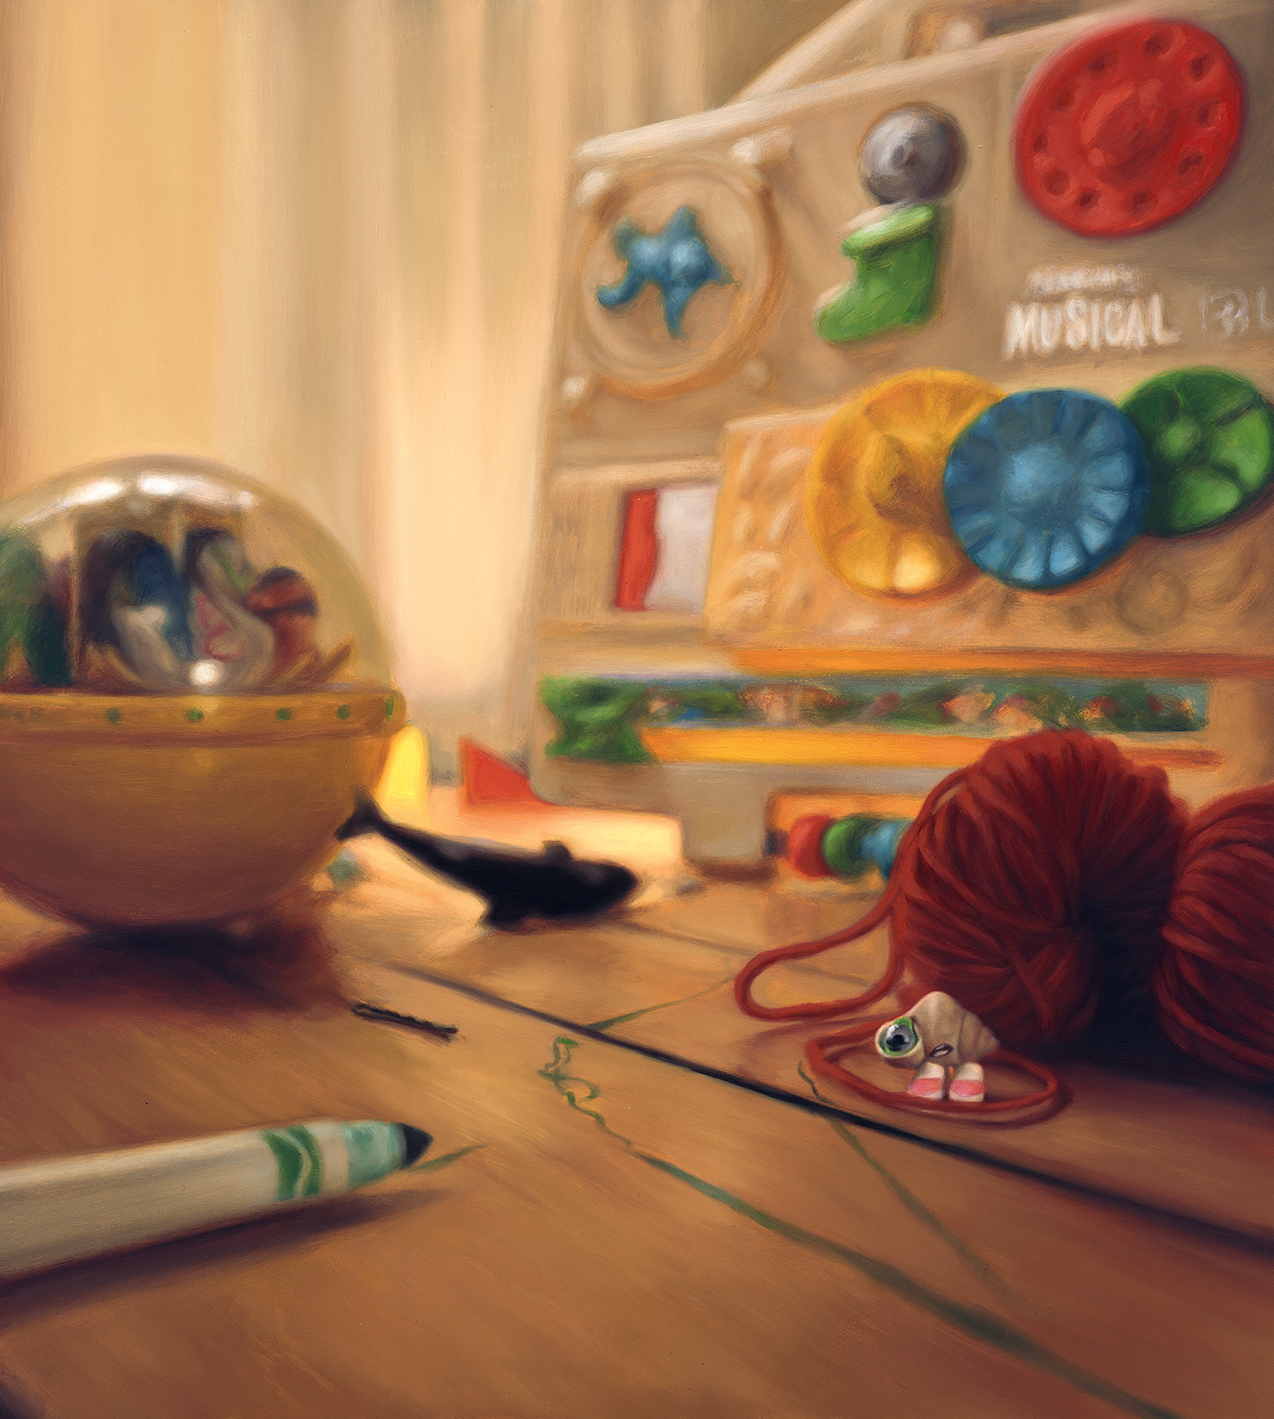 All images from thechildren's picture book Marcel the Shell With Shoes On: Things About Me © Jenny Slate and Dean Fleischer-Camp  Published by  Penguin Books    Paintings by Amy Lind